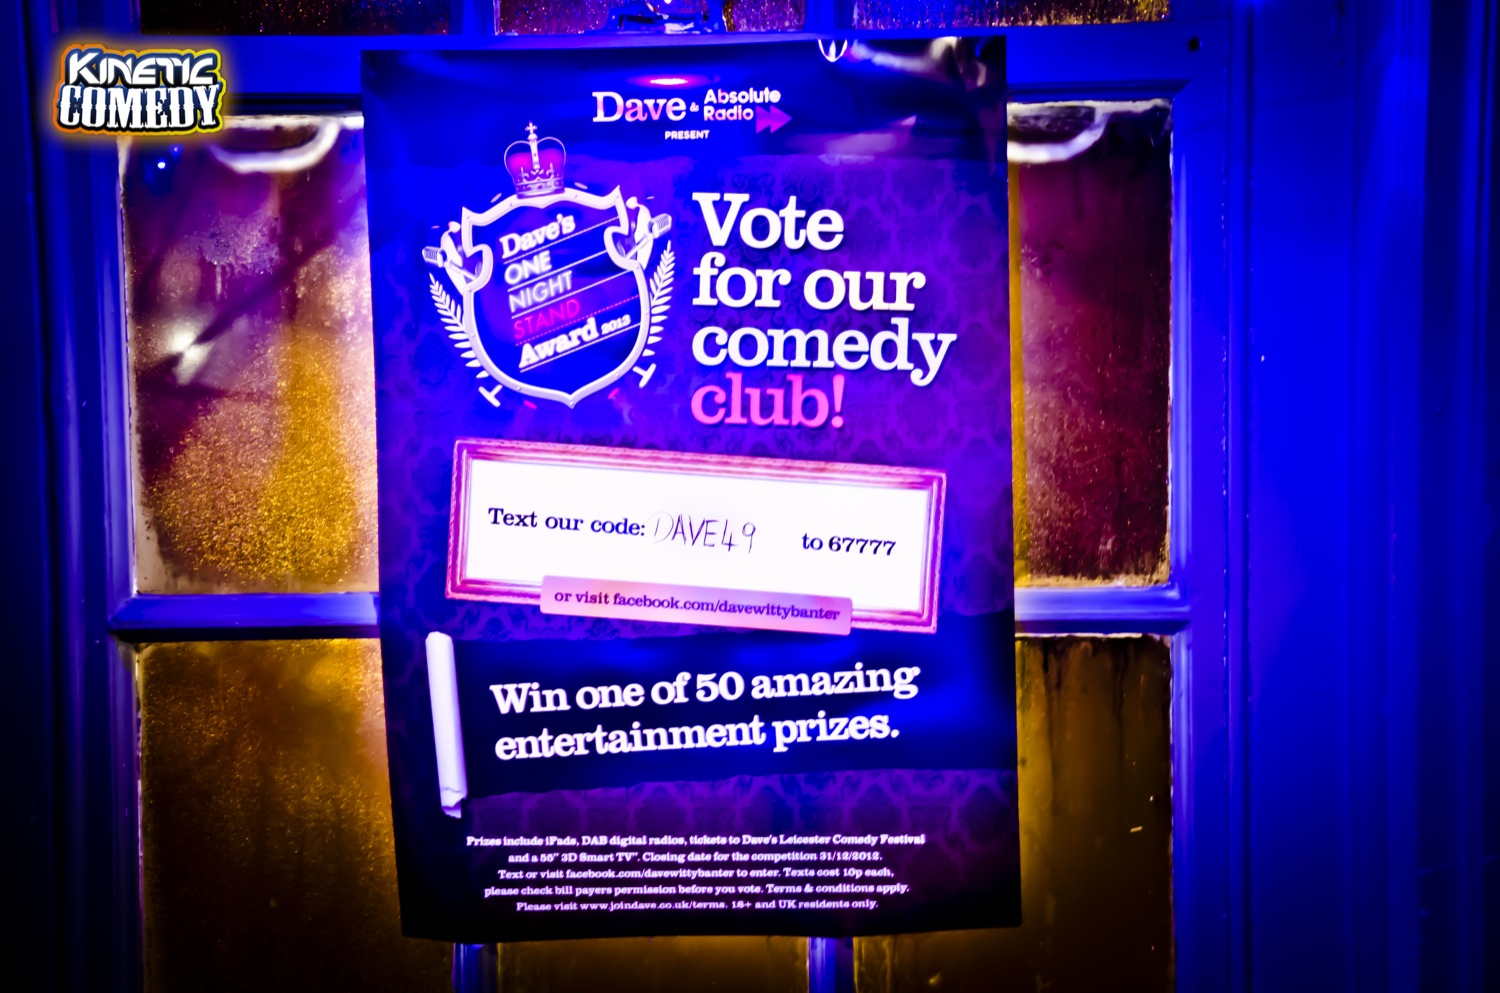 Vote for Kinetic Comedy